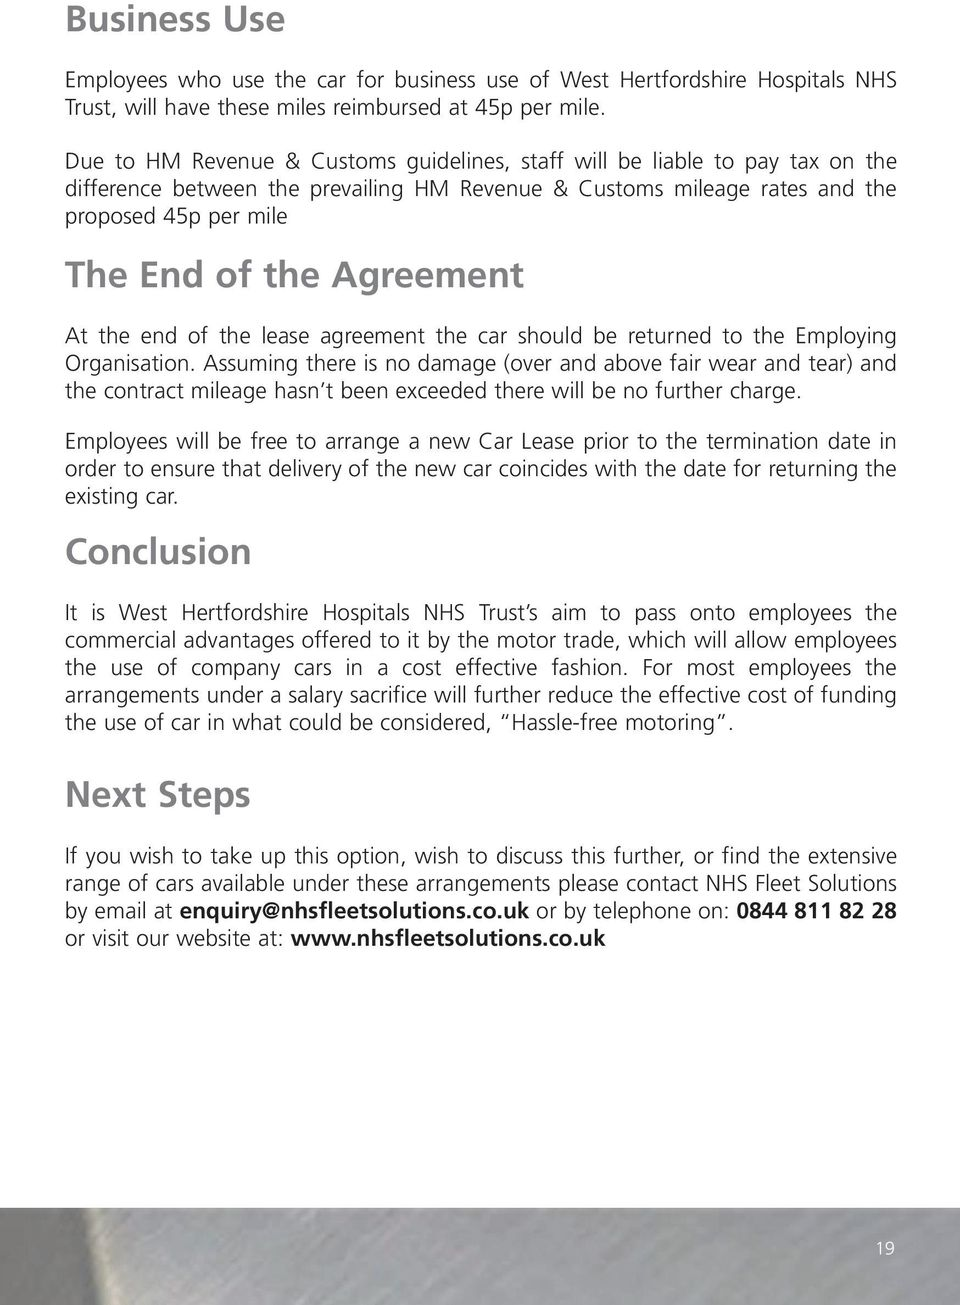 Agreement At the end of the lease agreement the car should be returned to the Employing Organisation.